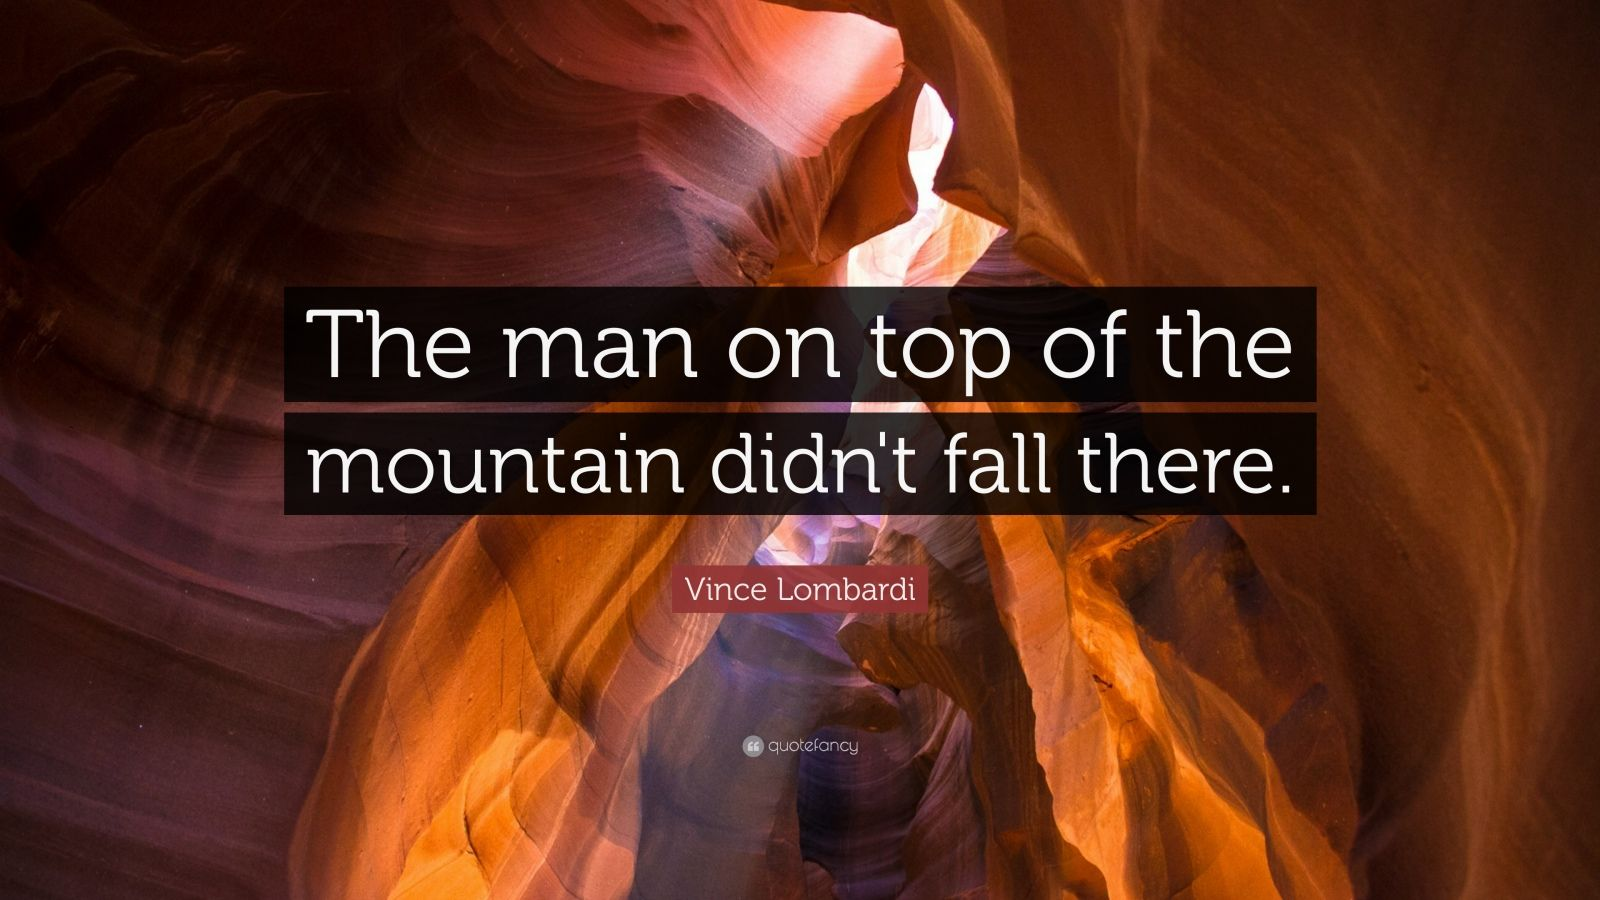 Wallpaper Fall Images Vince Lombardi Quote The Man On Top Of The Mountain Didn